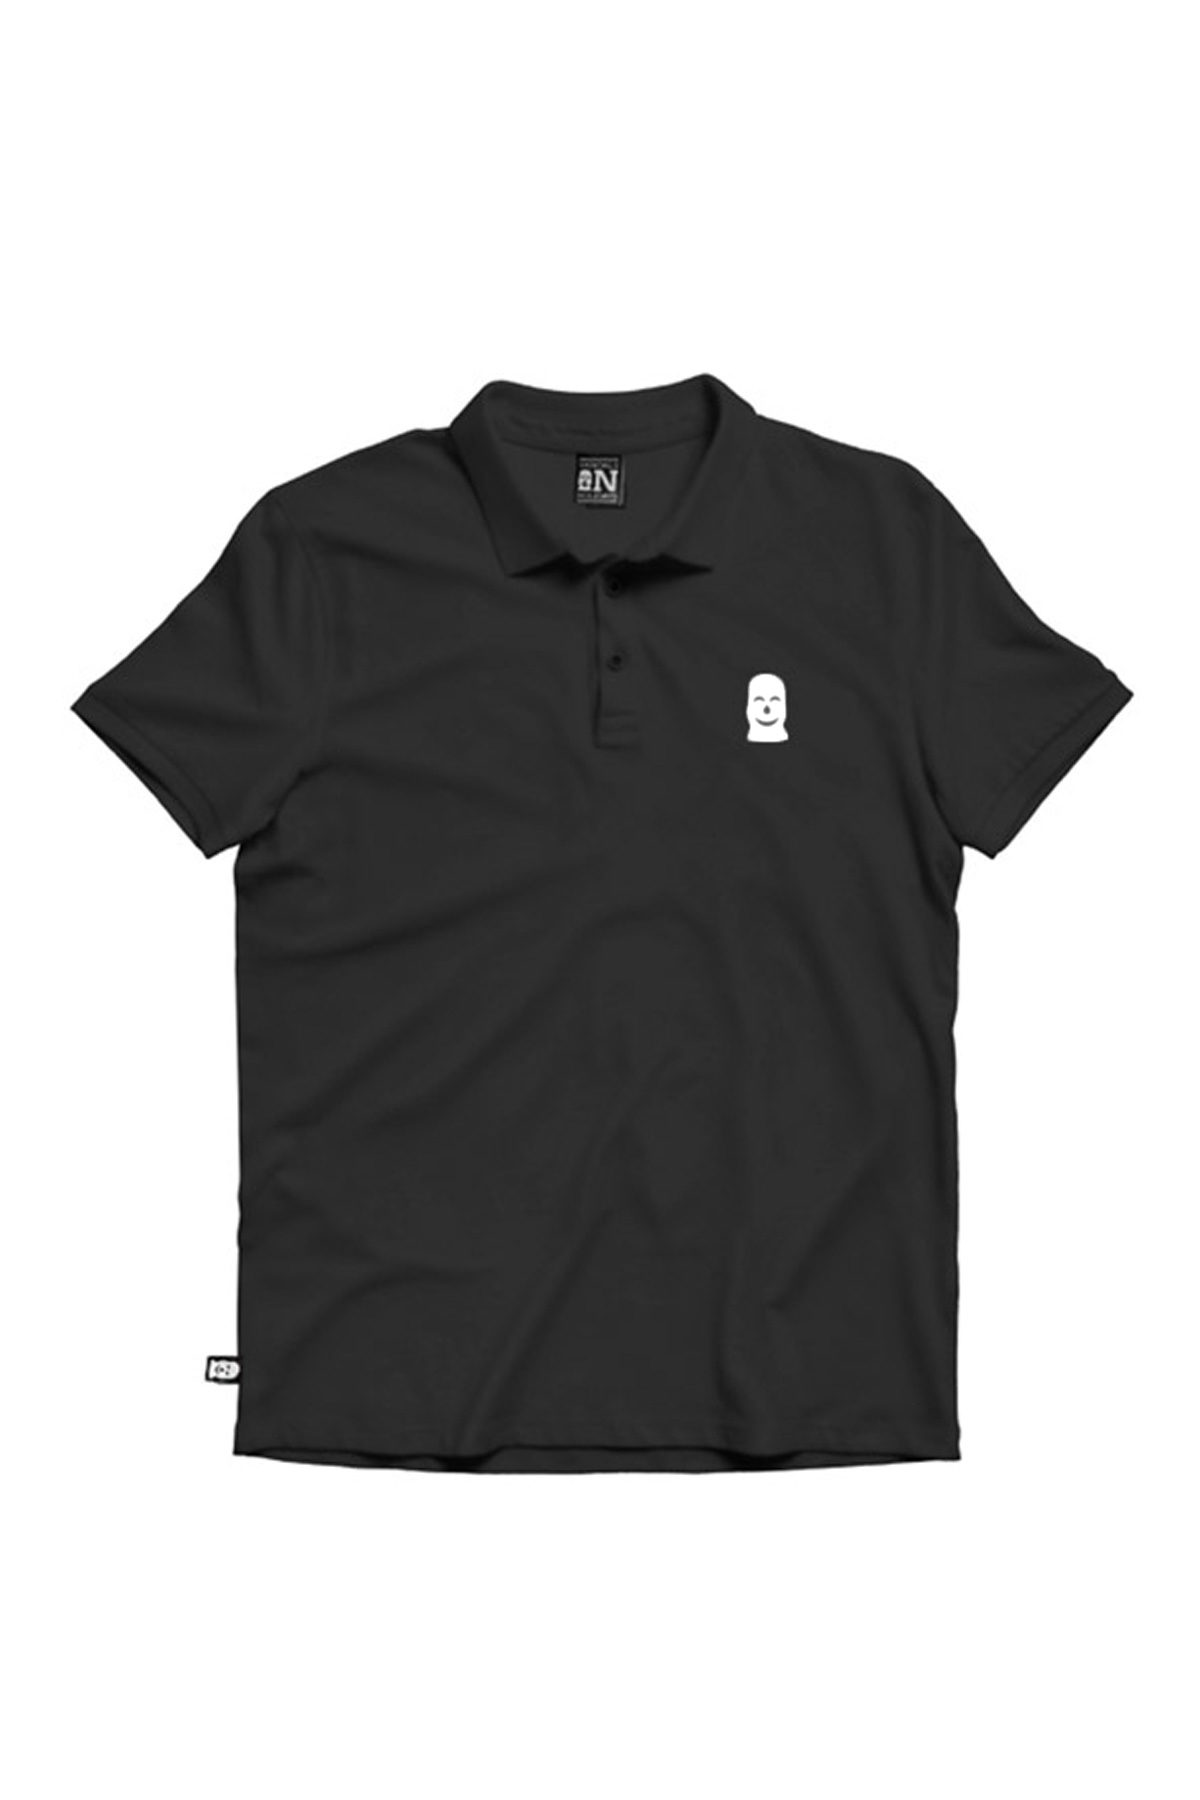 Vandals On Holidays WHITE MASK POLO Black T-Shirt